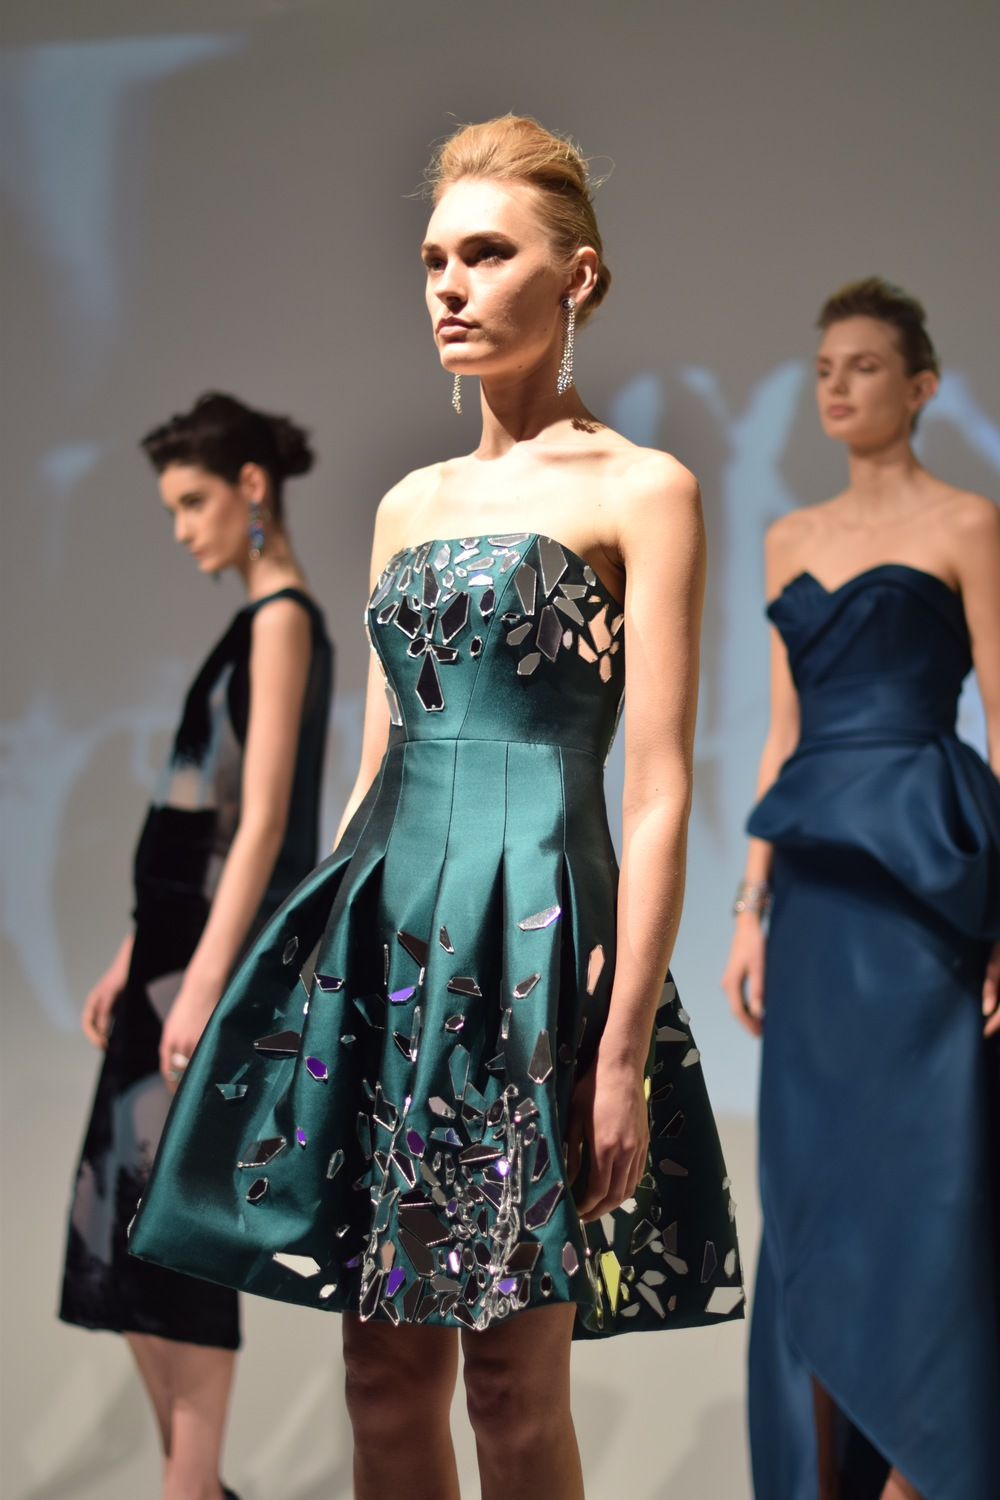 NYFW Rubin Singer Fashion Presentation Fall_Winter 2016 Louboutins _ Love Fashion Blog Esther Santer NYC Street Style Runway Models Collection Press Coverage Photos Details Dress Gown Beautiful Gorgeous Stunning Pretty Shop New York City Celebrities 7.jpg